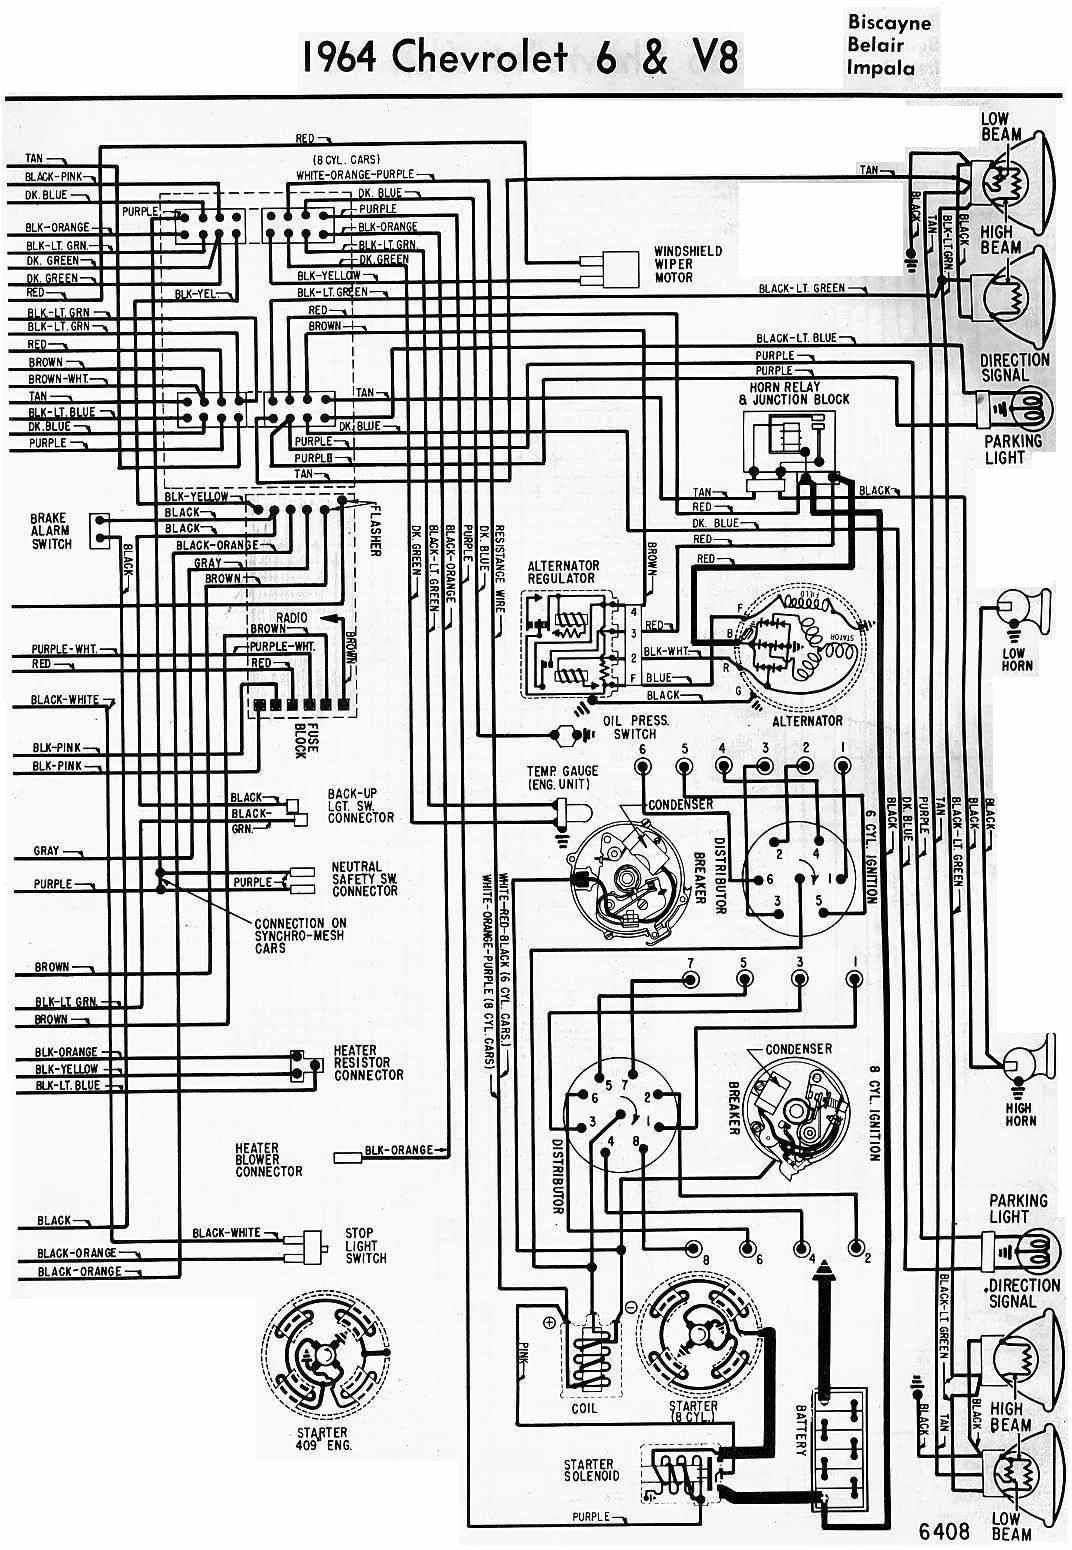 medium resolution of gm fuse box diagram 1964 impala wiring diagram loadgm fuse box diagram 1964 impala data diagram